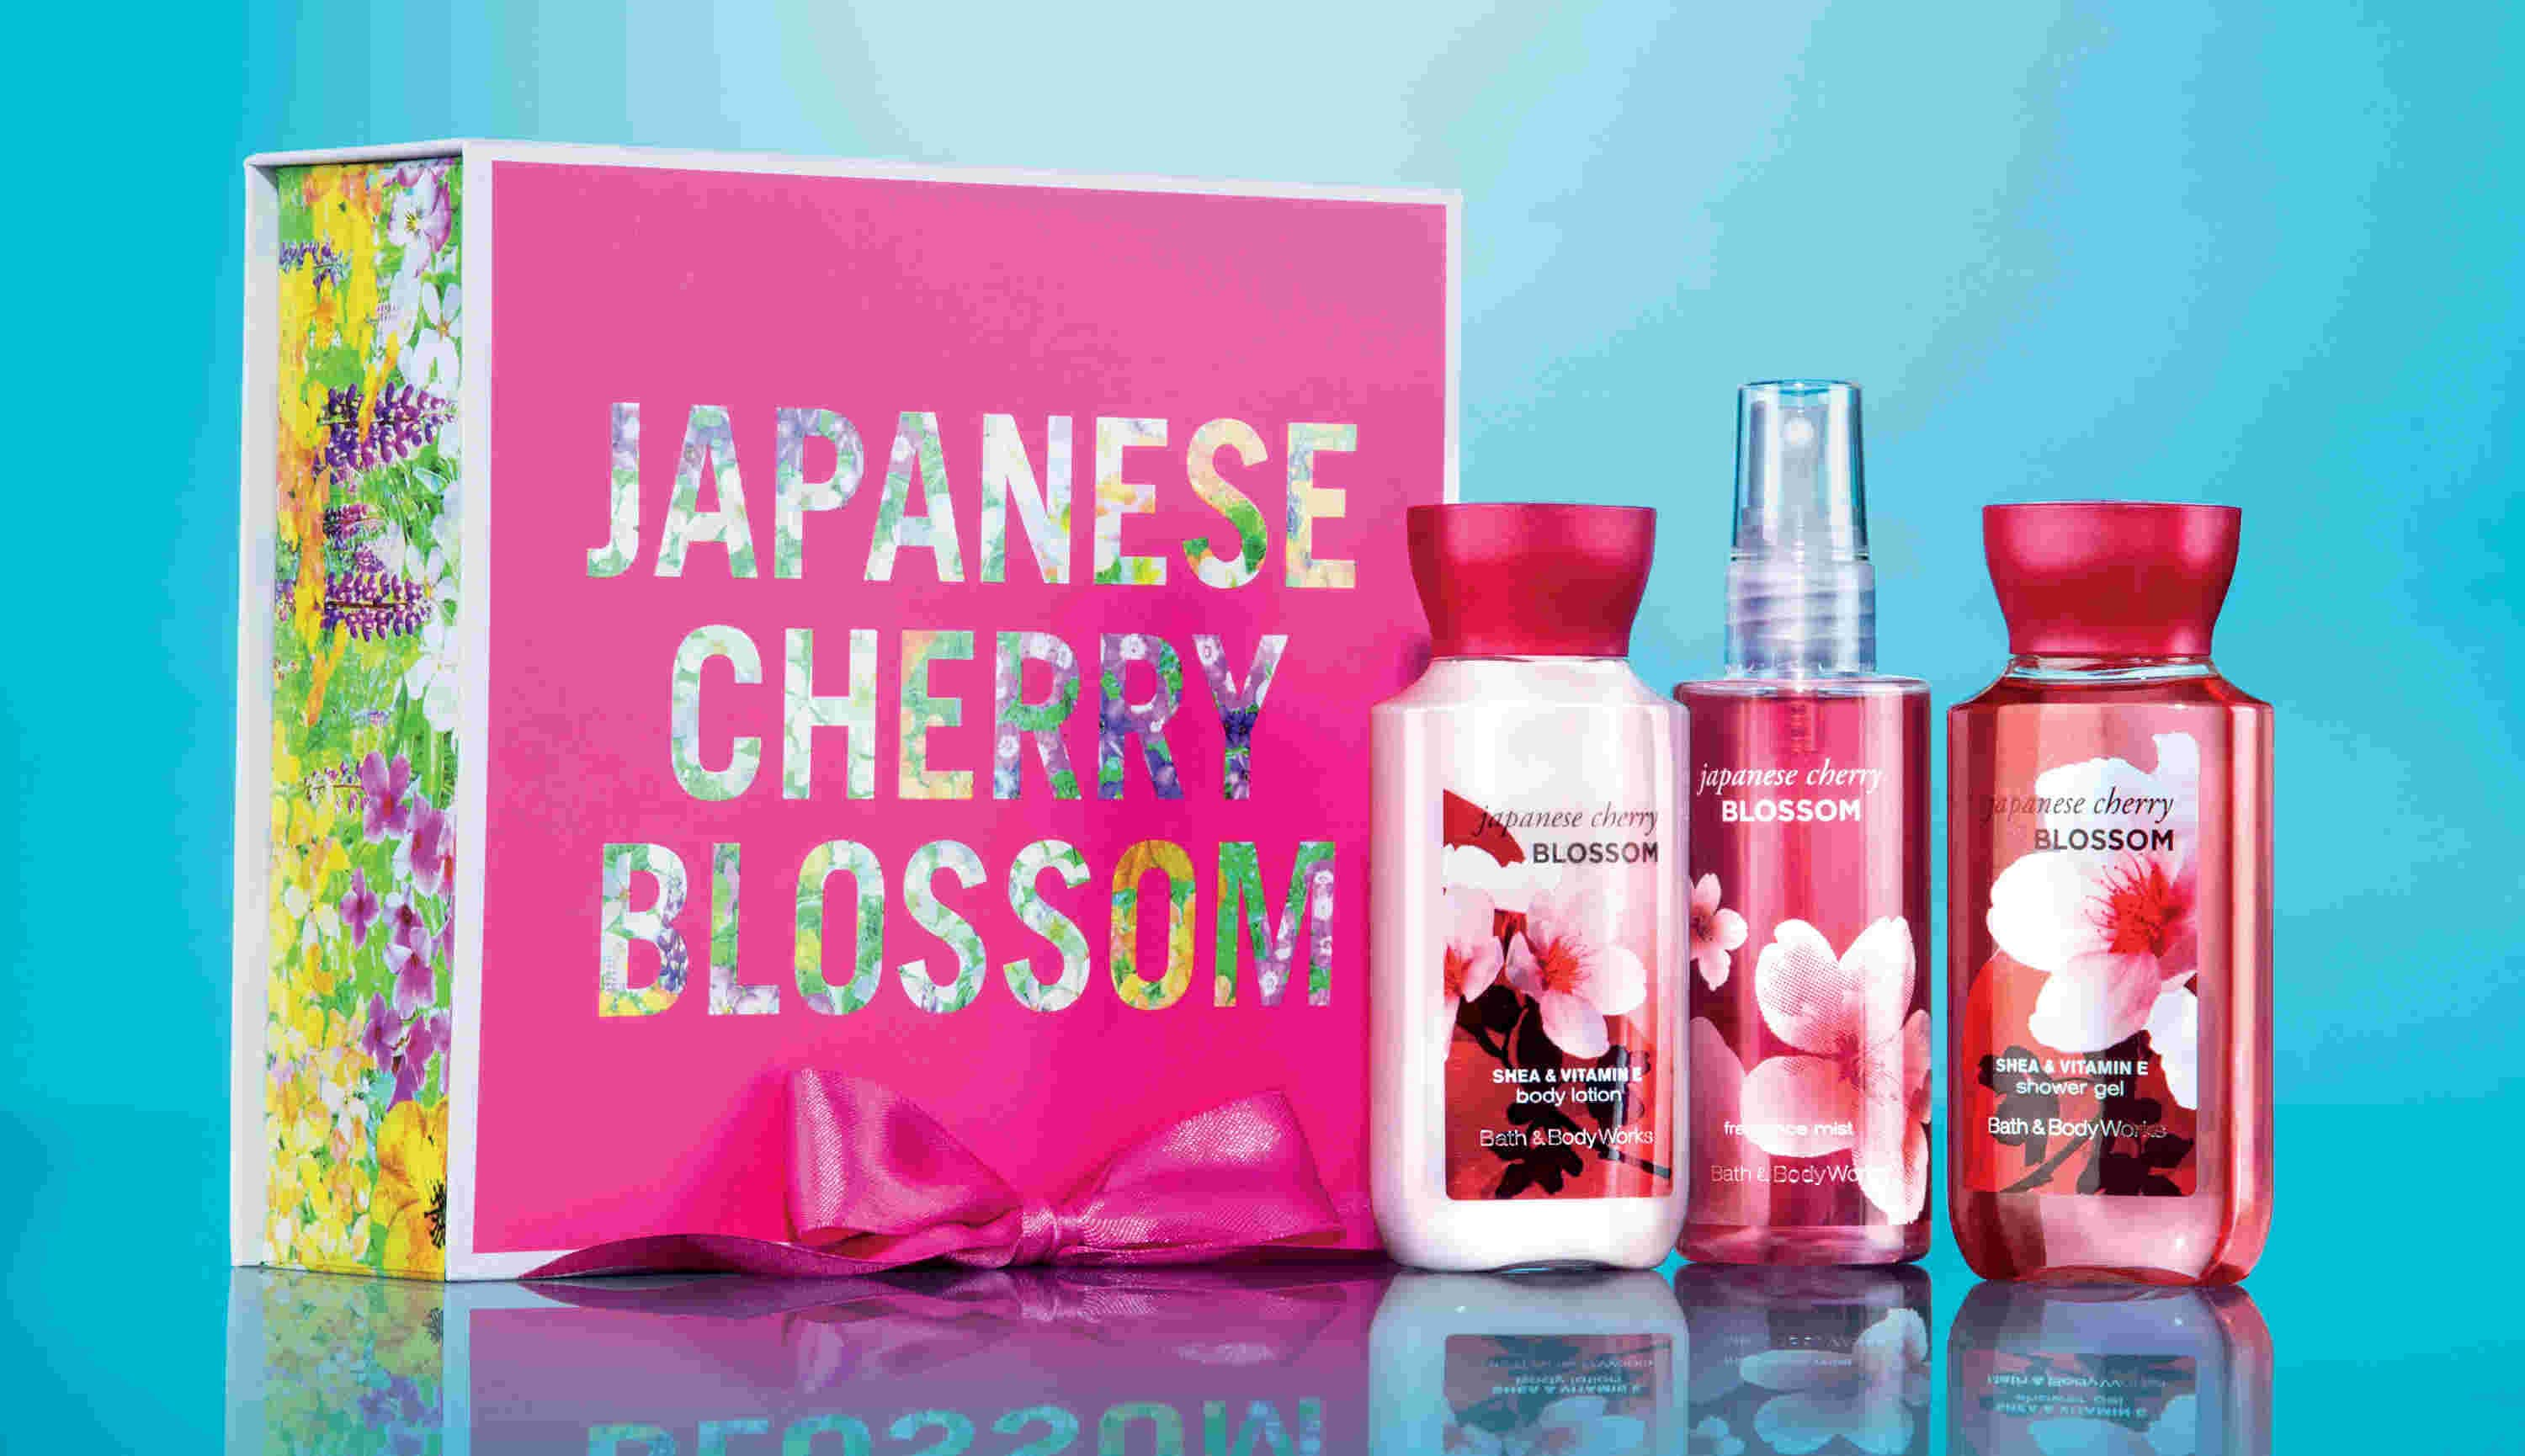 Bath body works sports beauty wellness at marina for Where are bath and body works products made